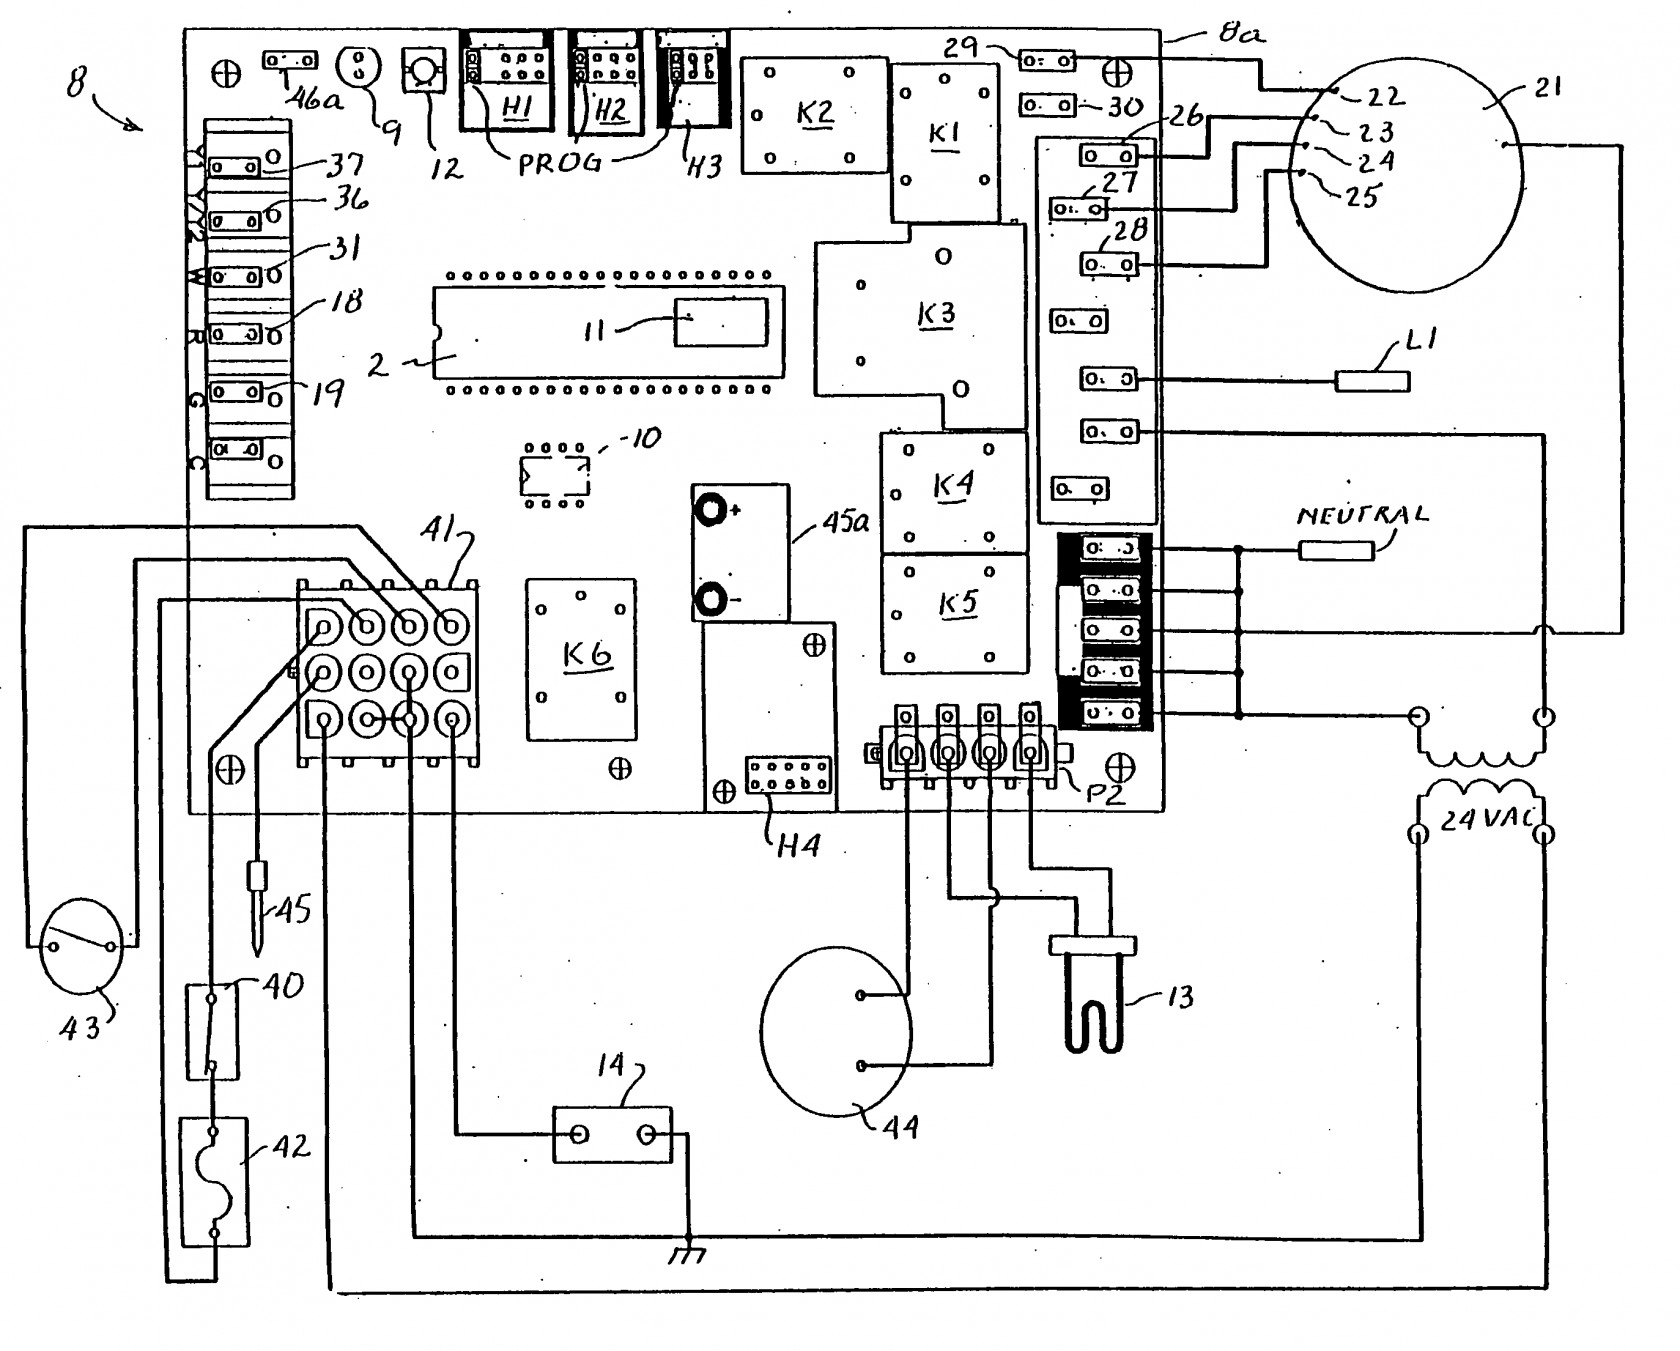 Furnace Wiring Box - List of Wiring Diagrams on